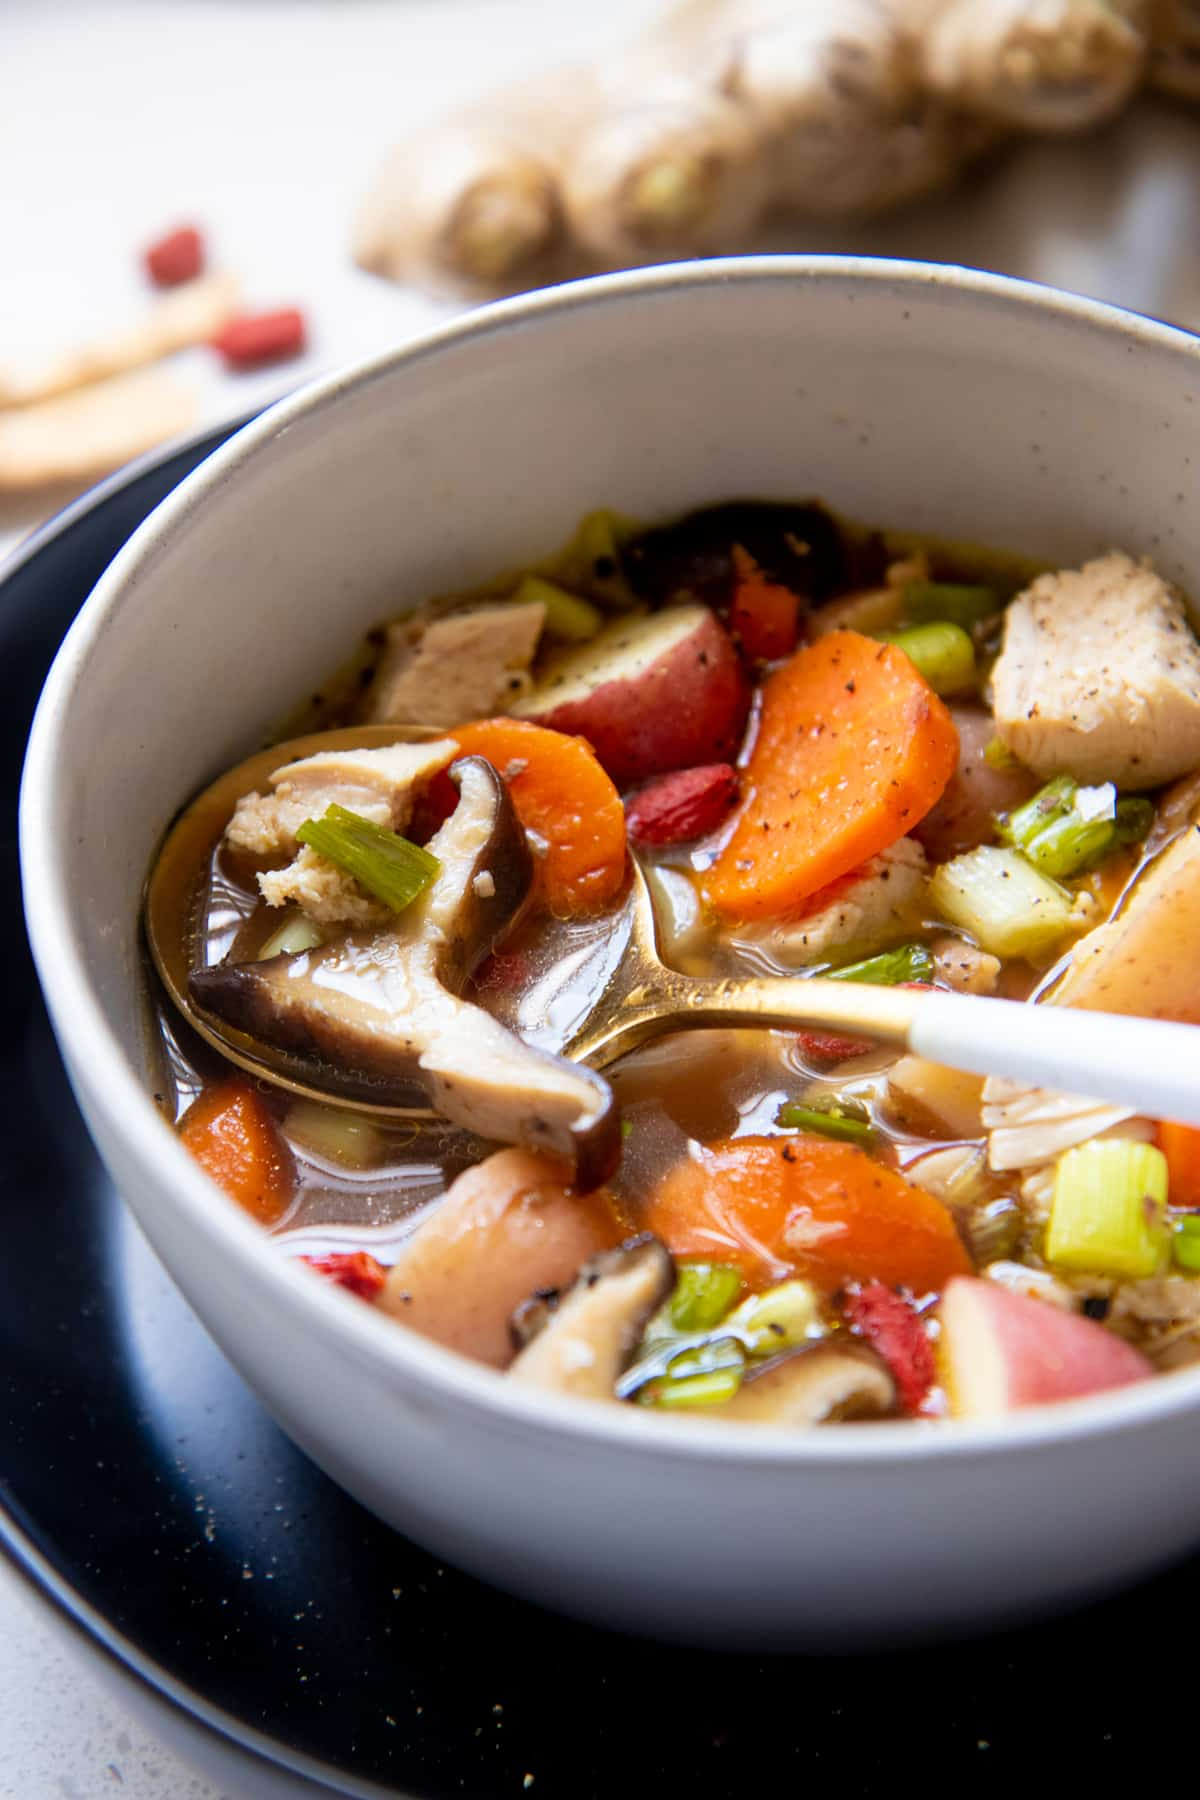 A spoon dips into a bowl full of soup broth, chicken, vegetables, and Chinese herbs.